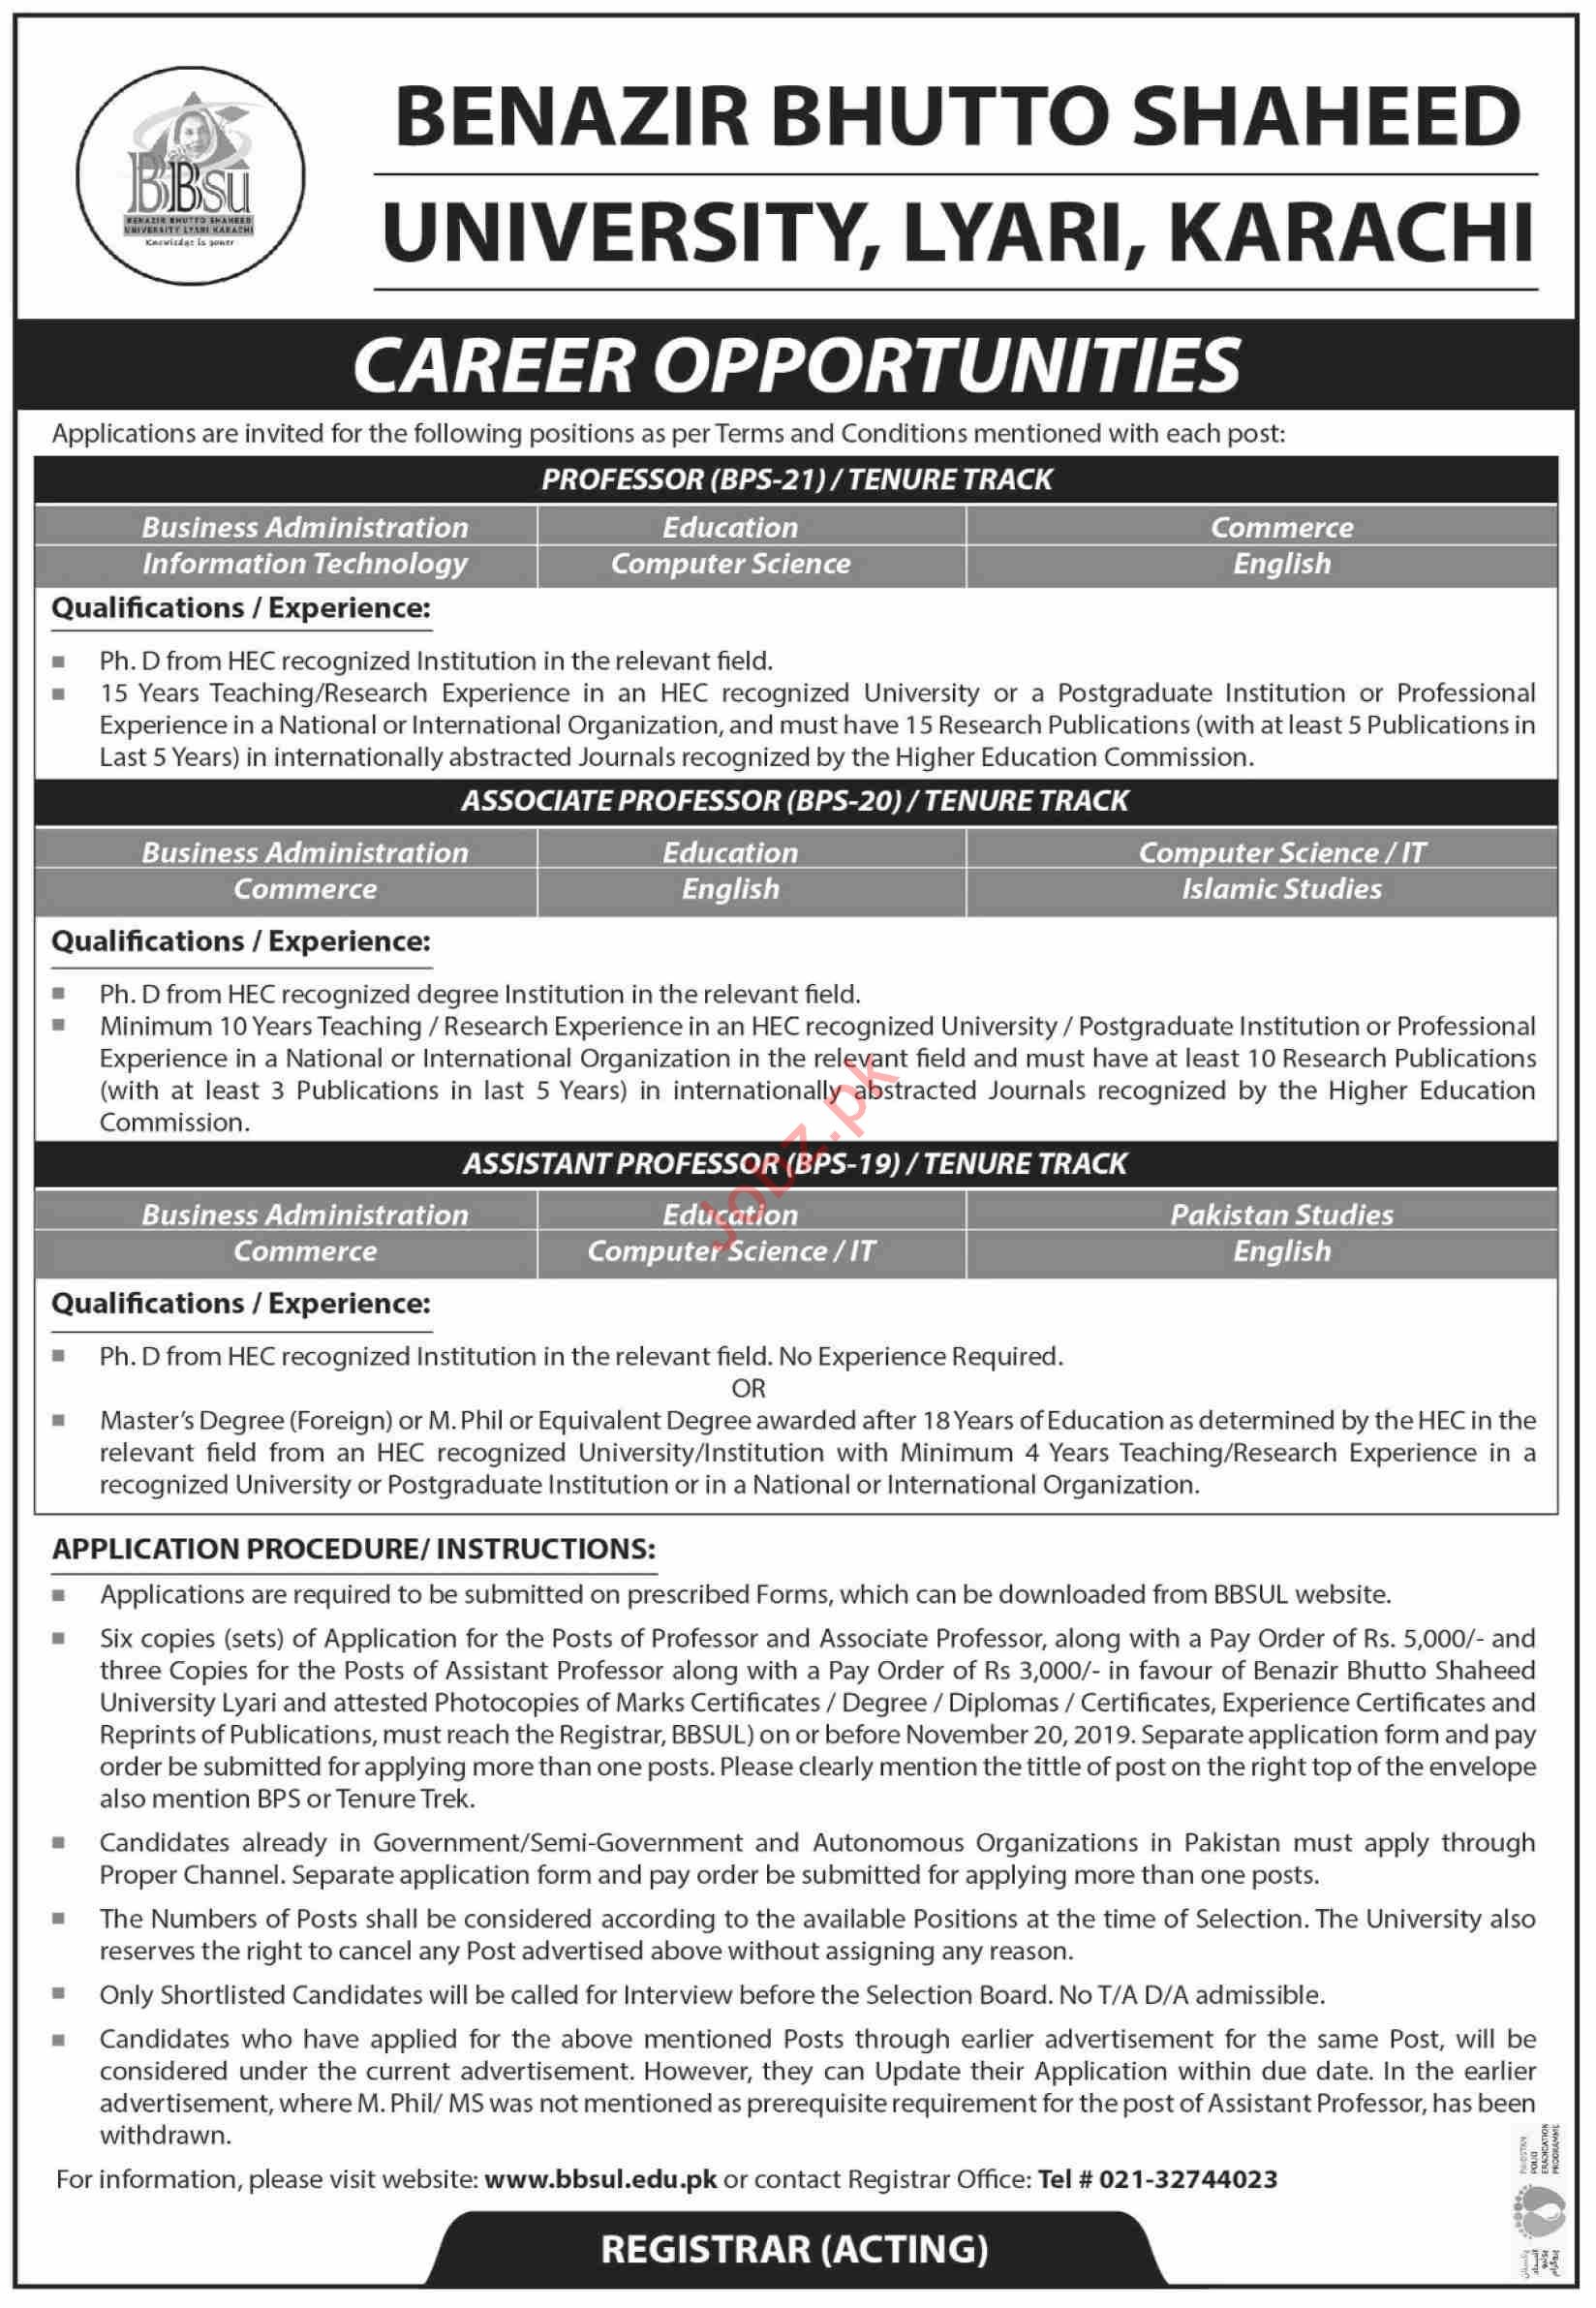 Benazir Bhutto Shaheed University Faculty Jobs in Karachi